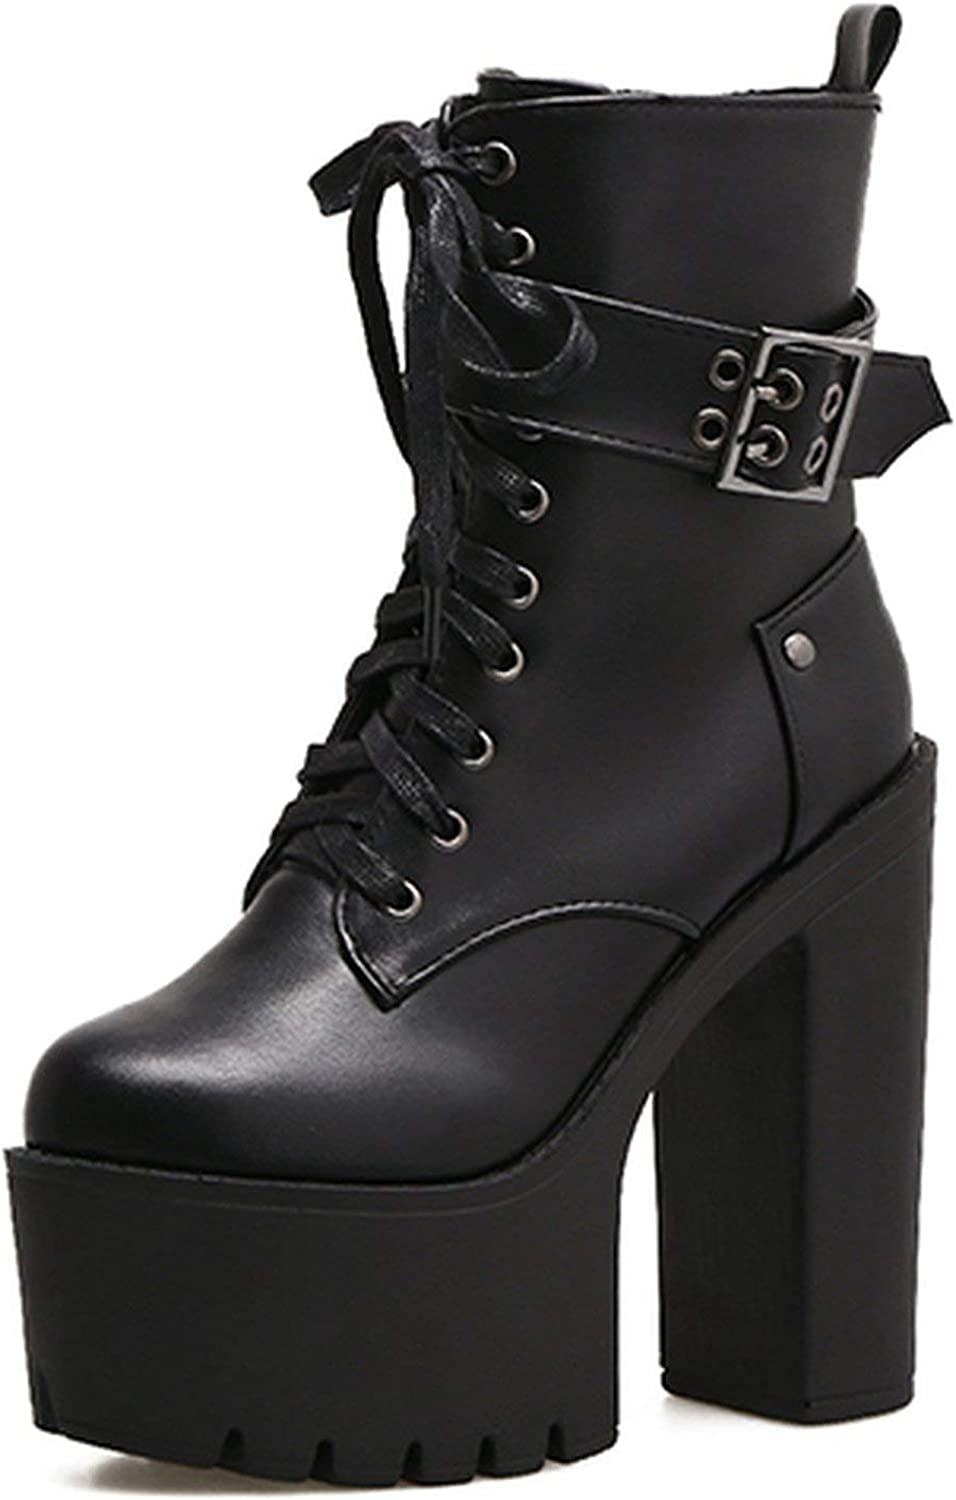 Summer-lavender Ankle Boots Platform shoes Round Toe Autumn Boots Thick High Heels Lacing Buckle Black Punk Boots